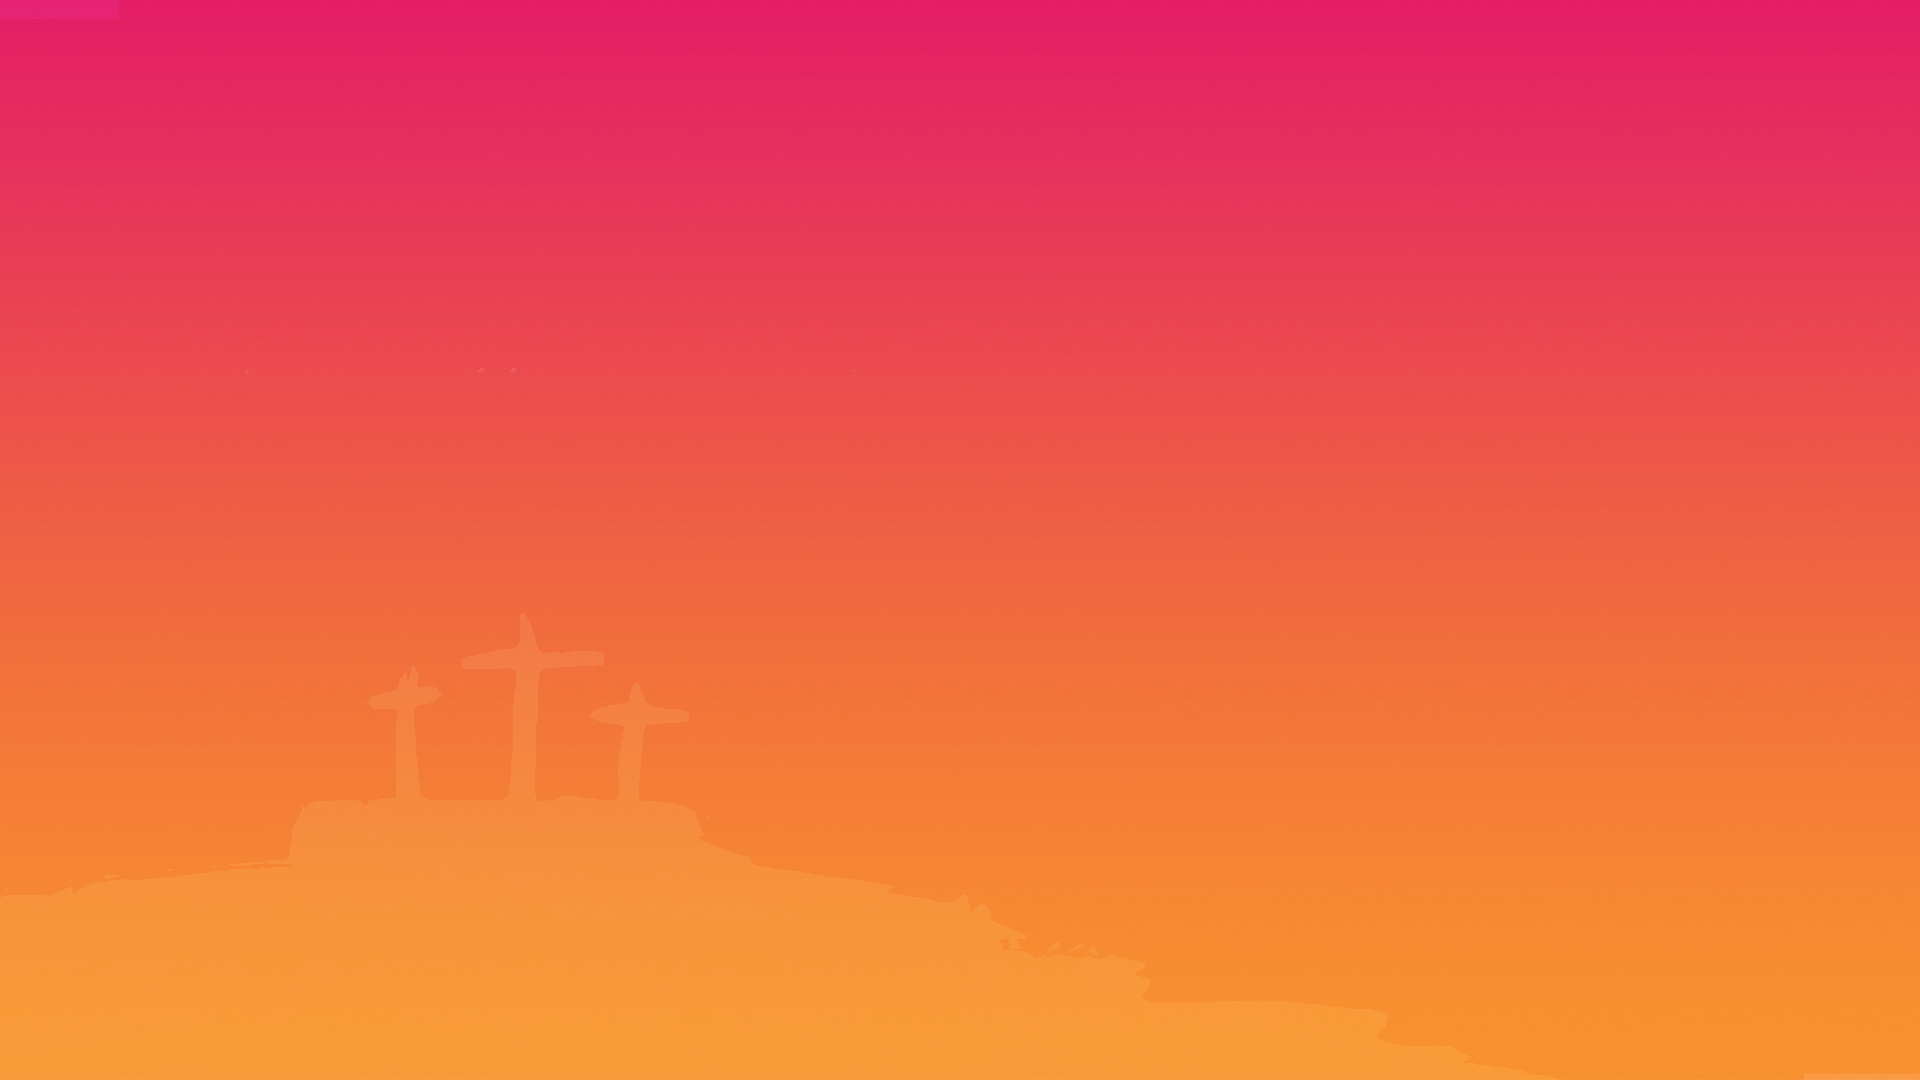 Gradient color w/ cross